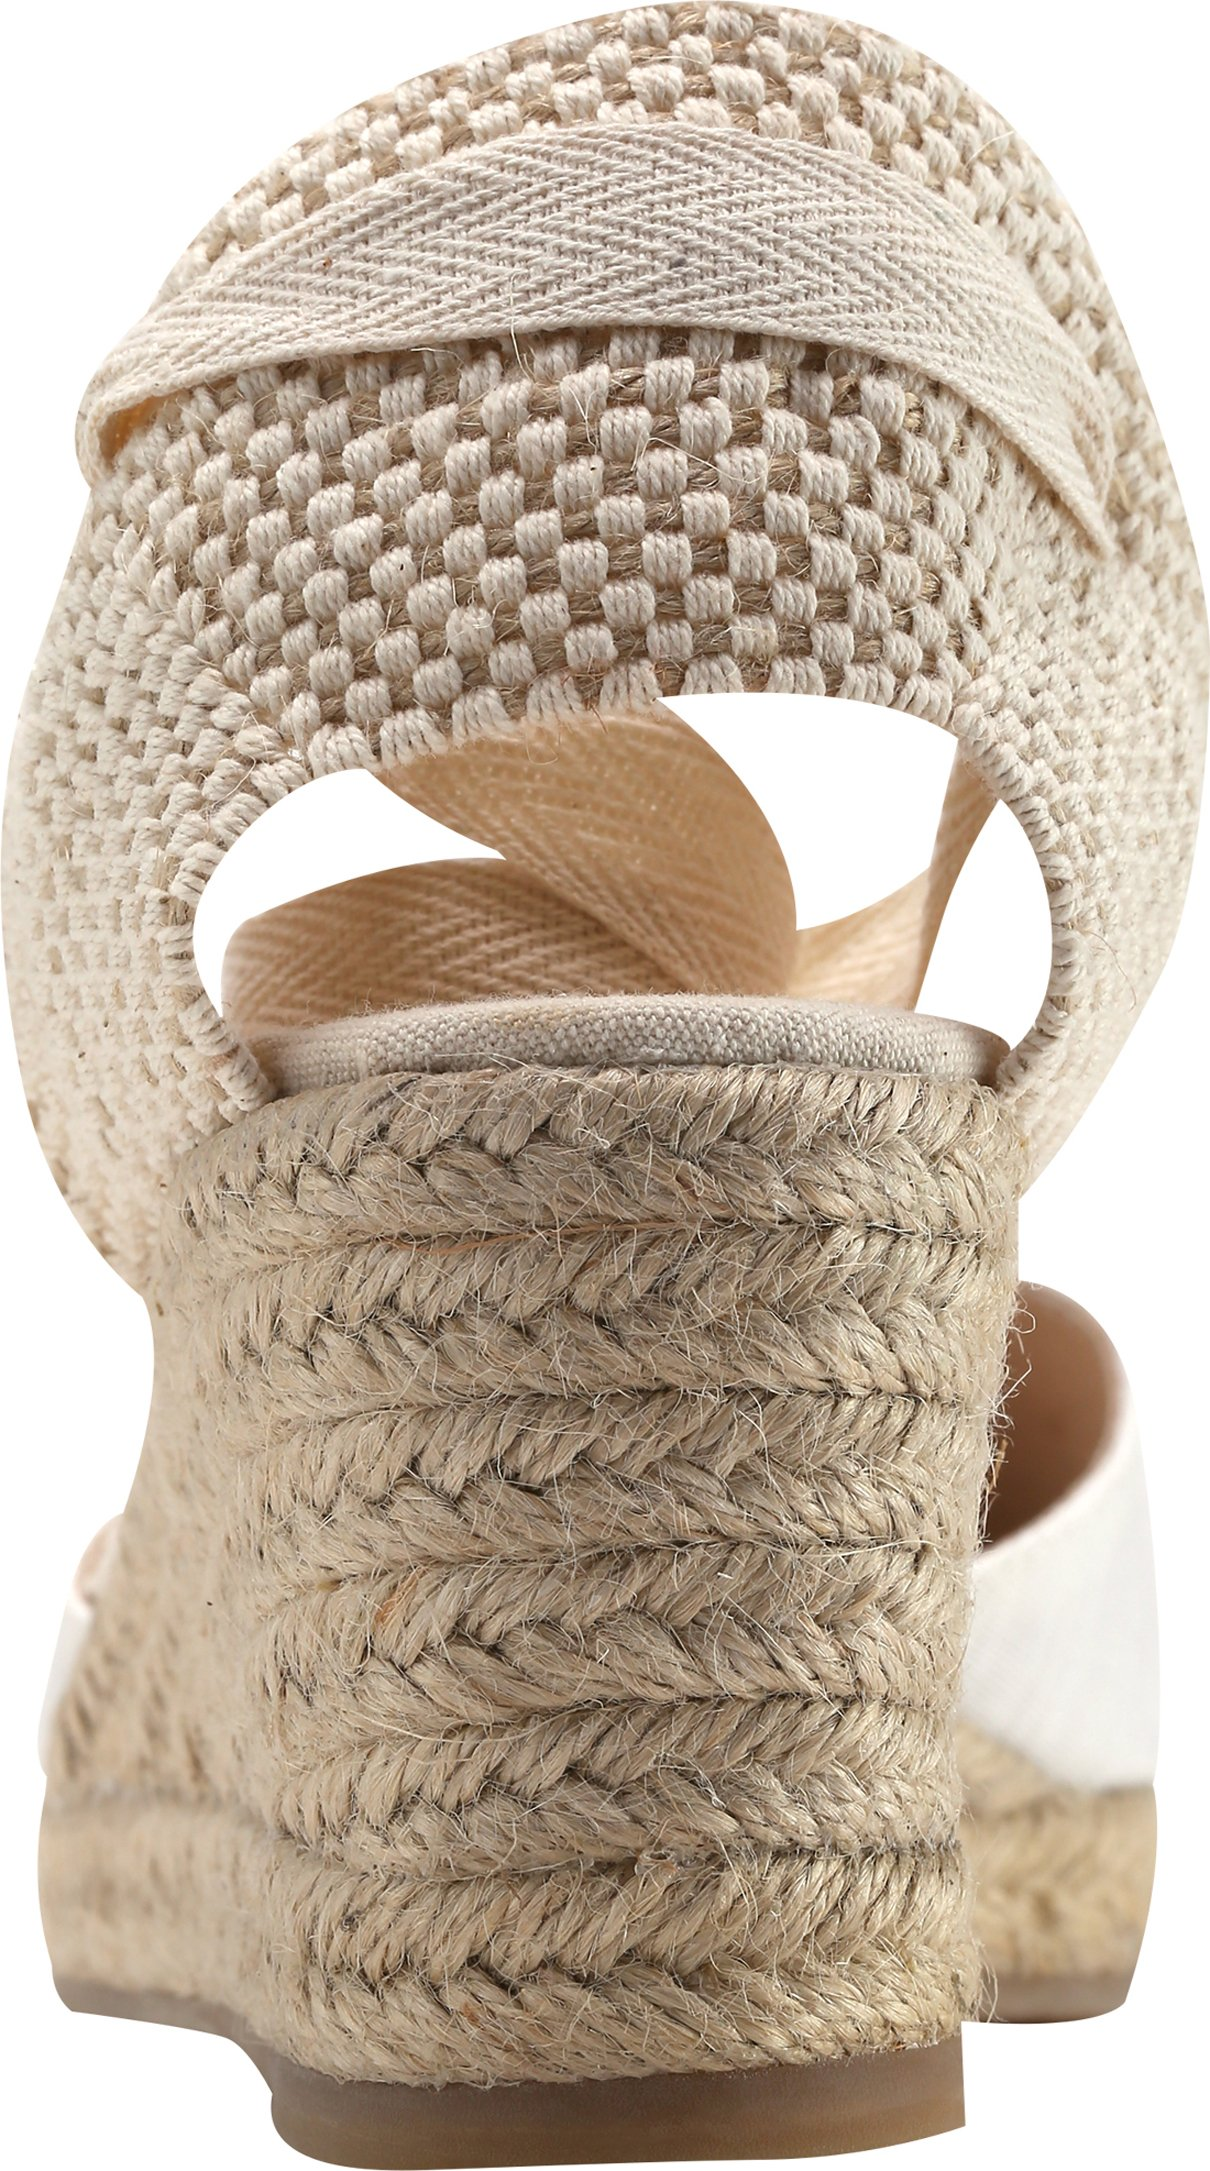 U-lite Women's Summer Leather Innersole Wedges Shoes, Ankle-Wrap Pompom Sandals White7 by U-lite (Image #2)